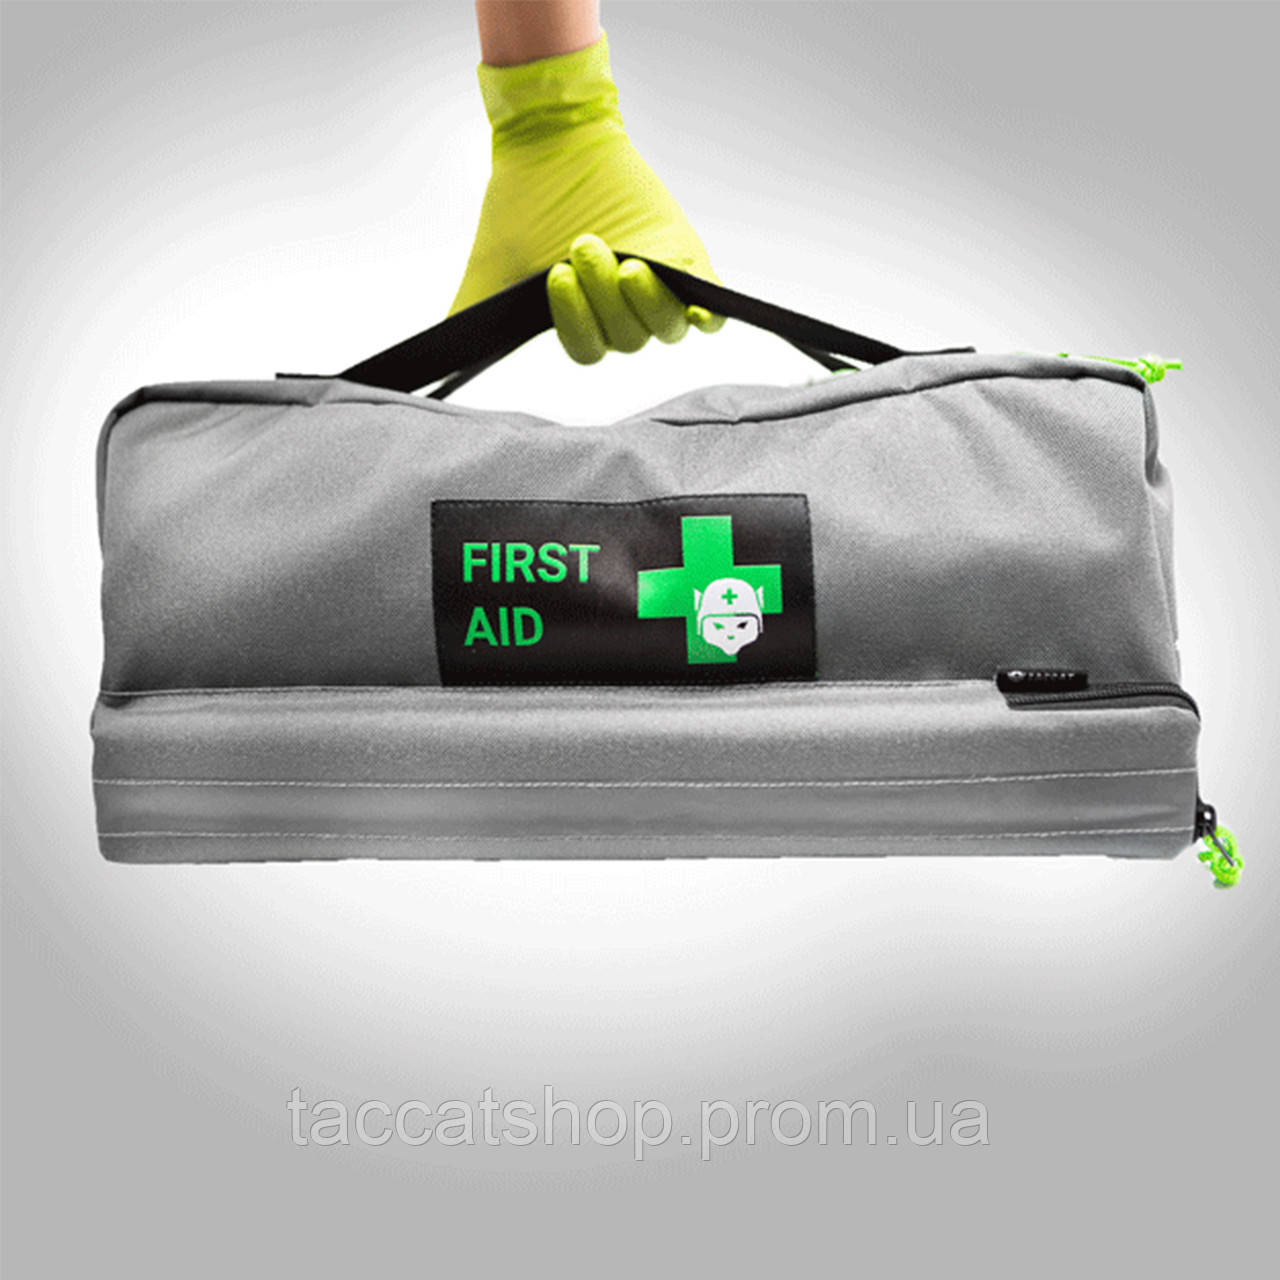 Lifesaver urban kit full 3.0